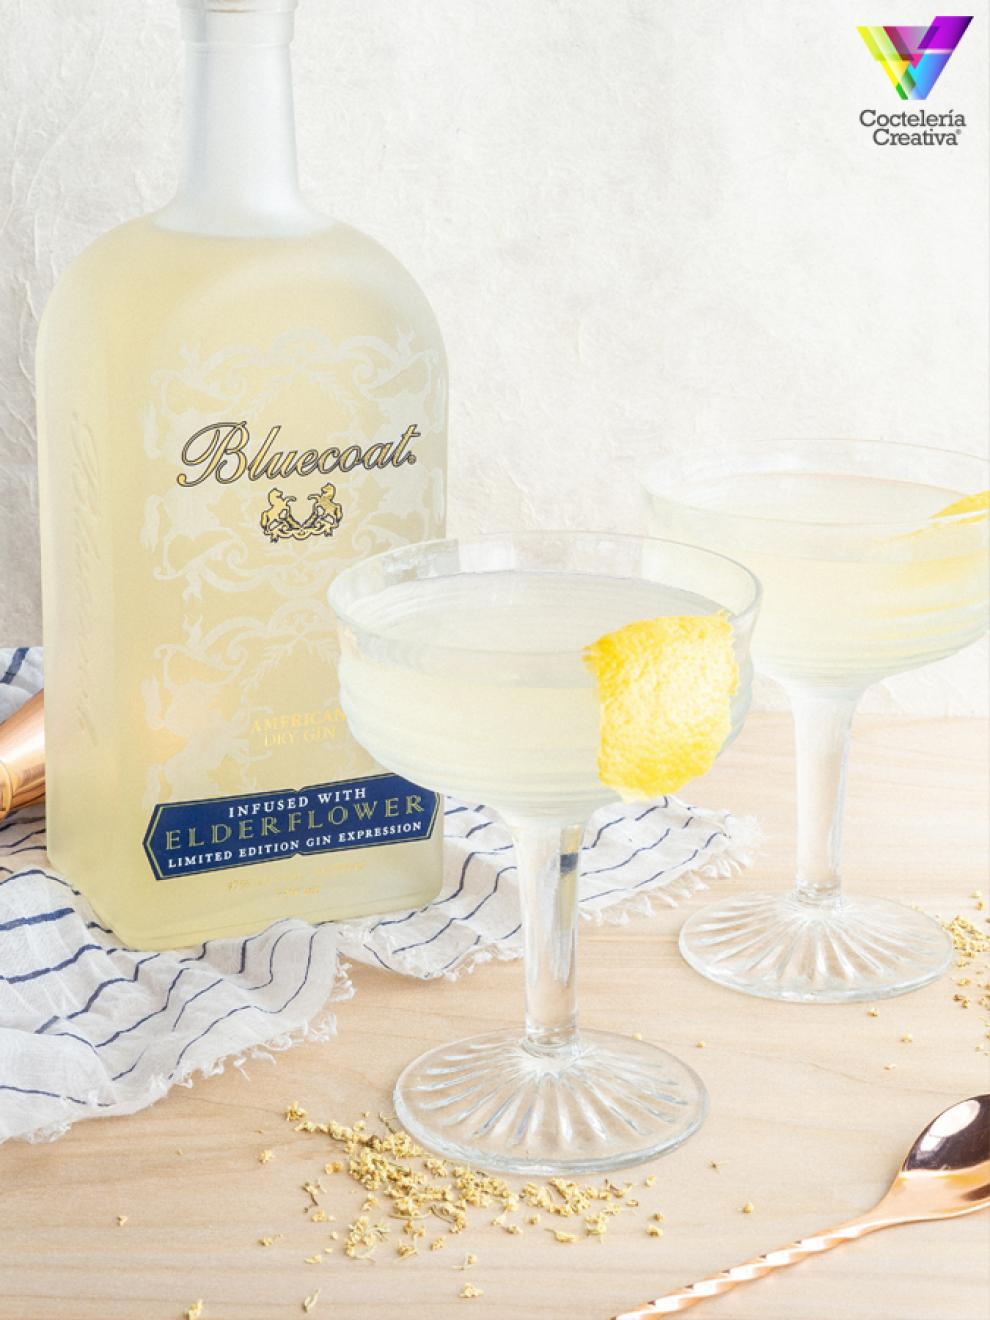 imagenh del cóctel bluecoat elderflower martini